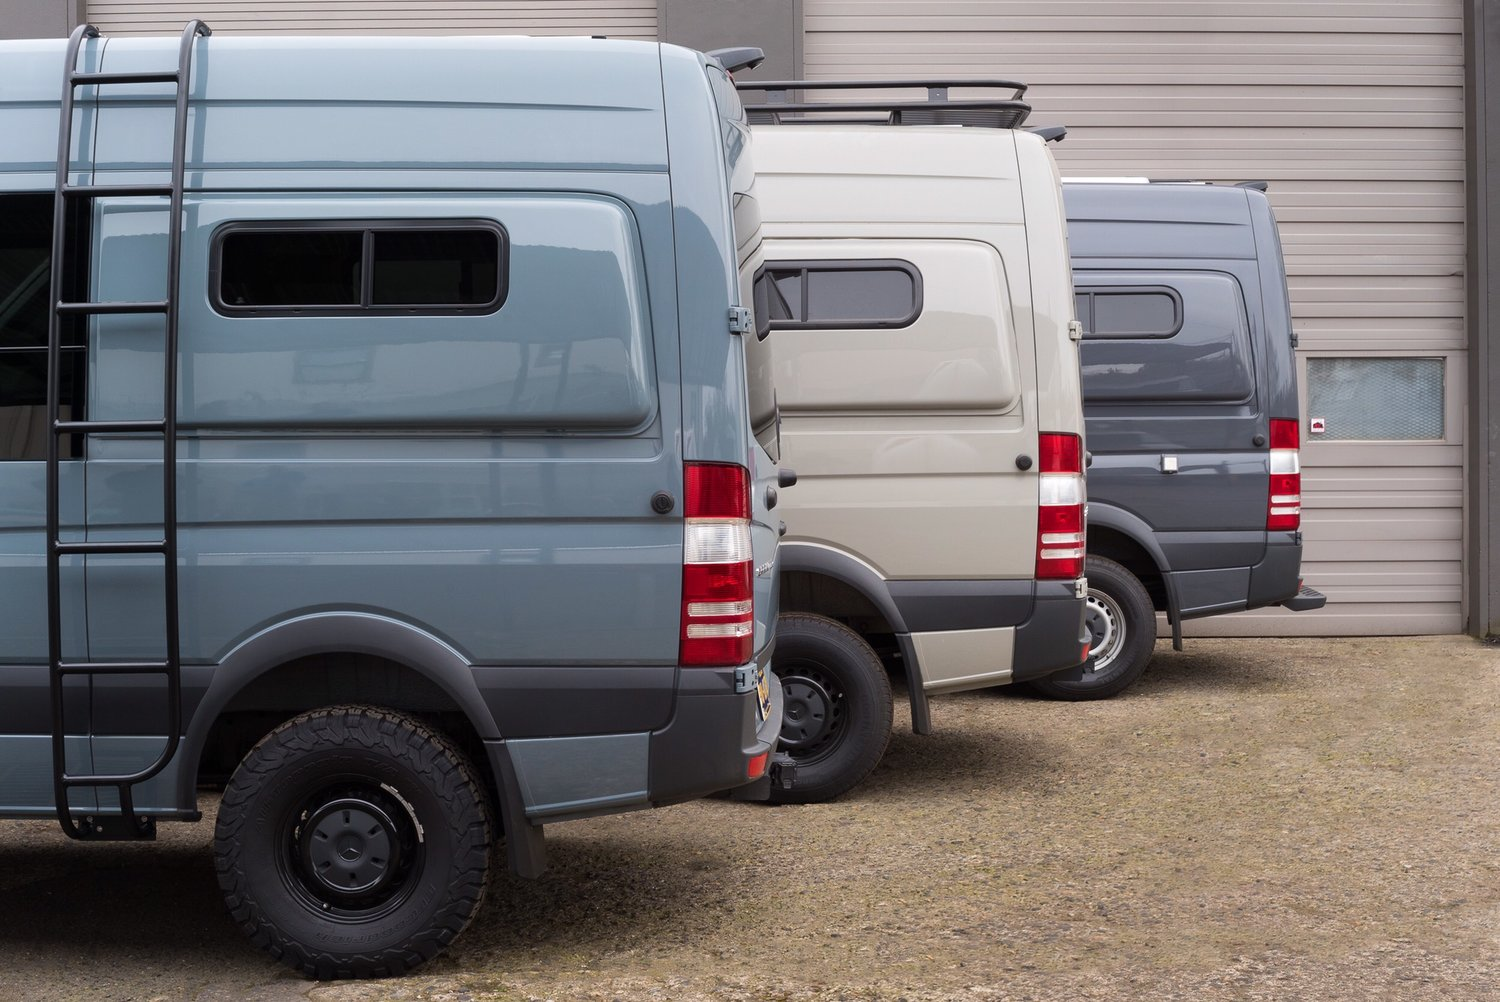 3ea5fedb3446 Each build is highly customized to the functional and aesthetic needs of  our clients. We specialize in upfitting new Mercedes Sprinter vans  and  restoring ...